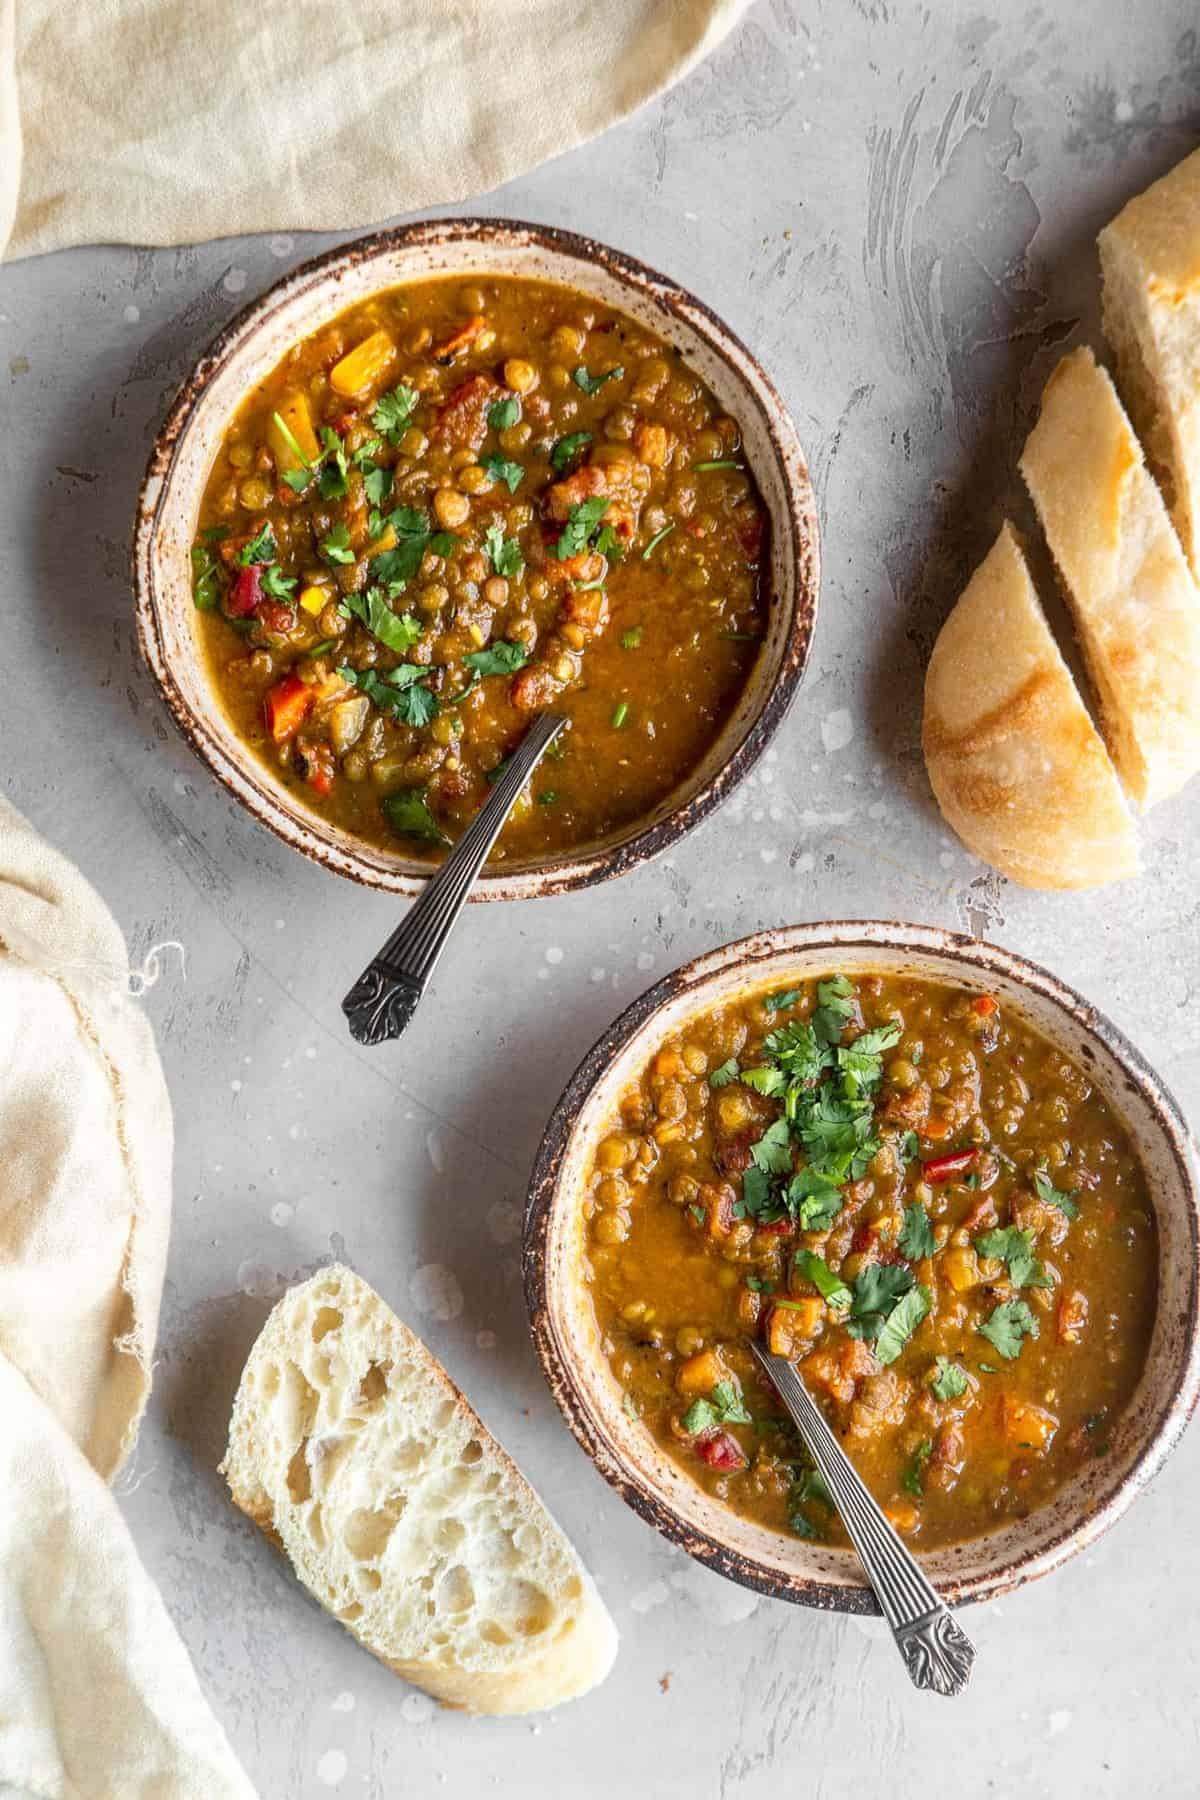 two bowls of curry lentil soup in bowls on a table with bread